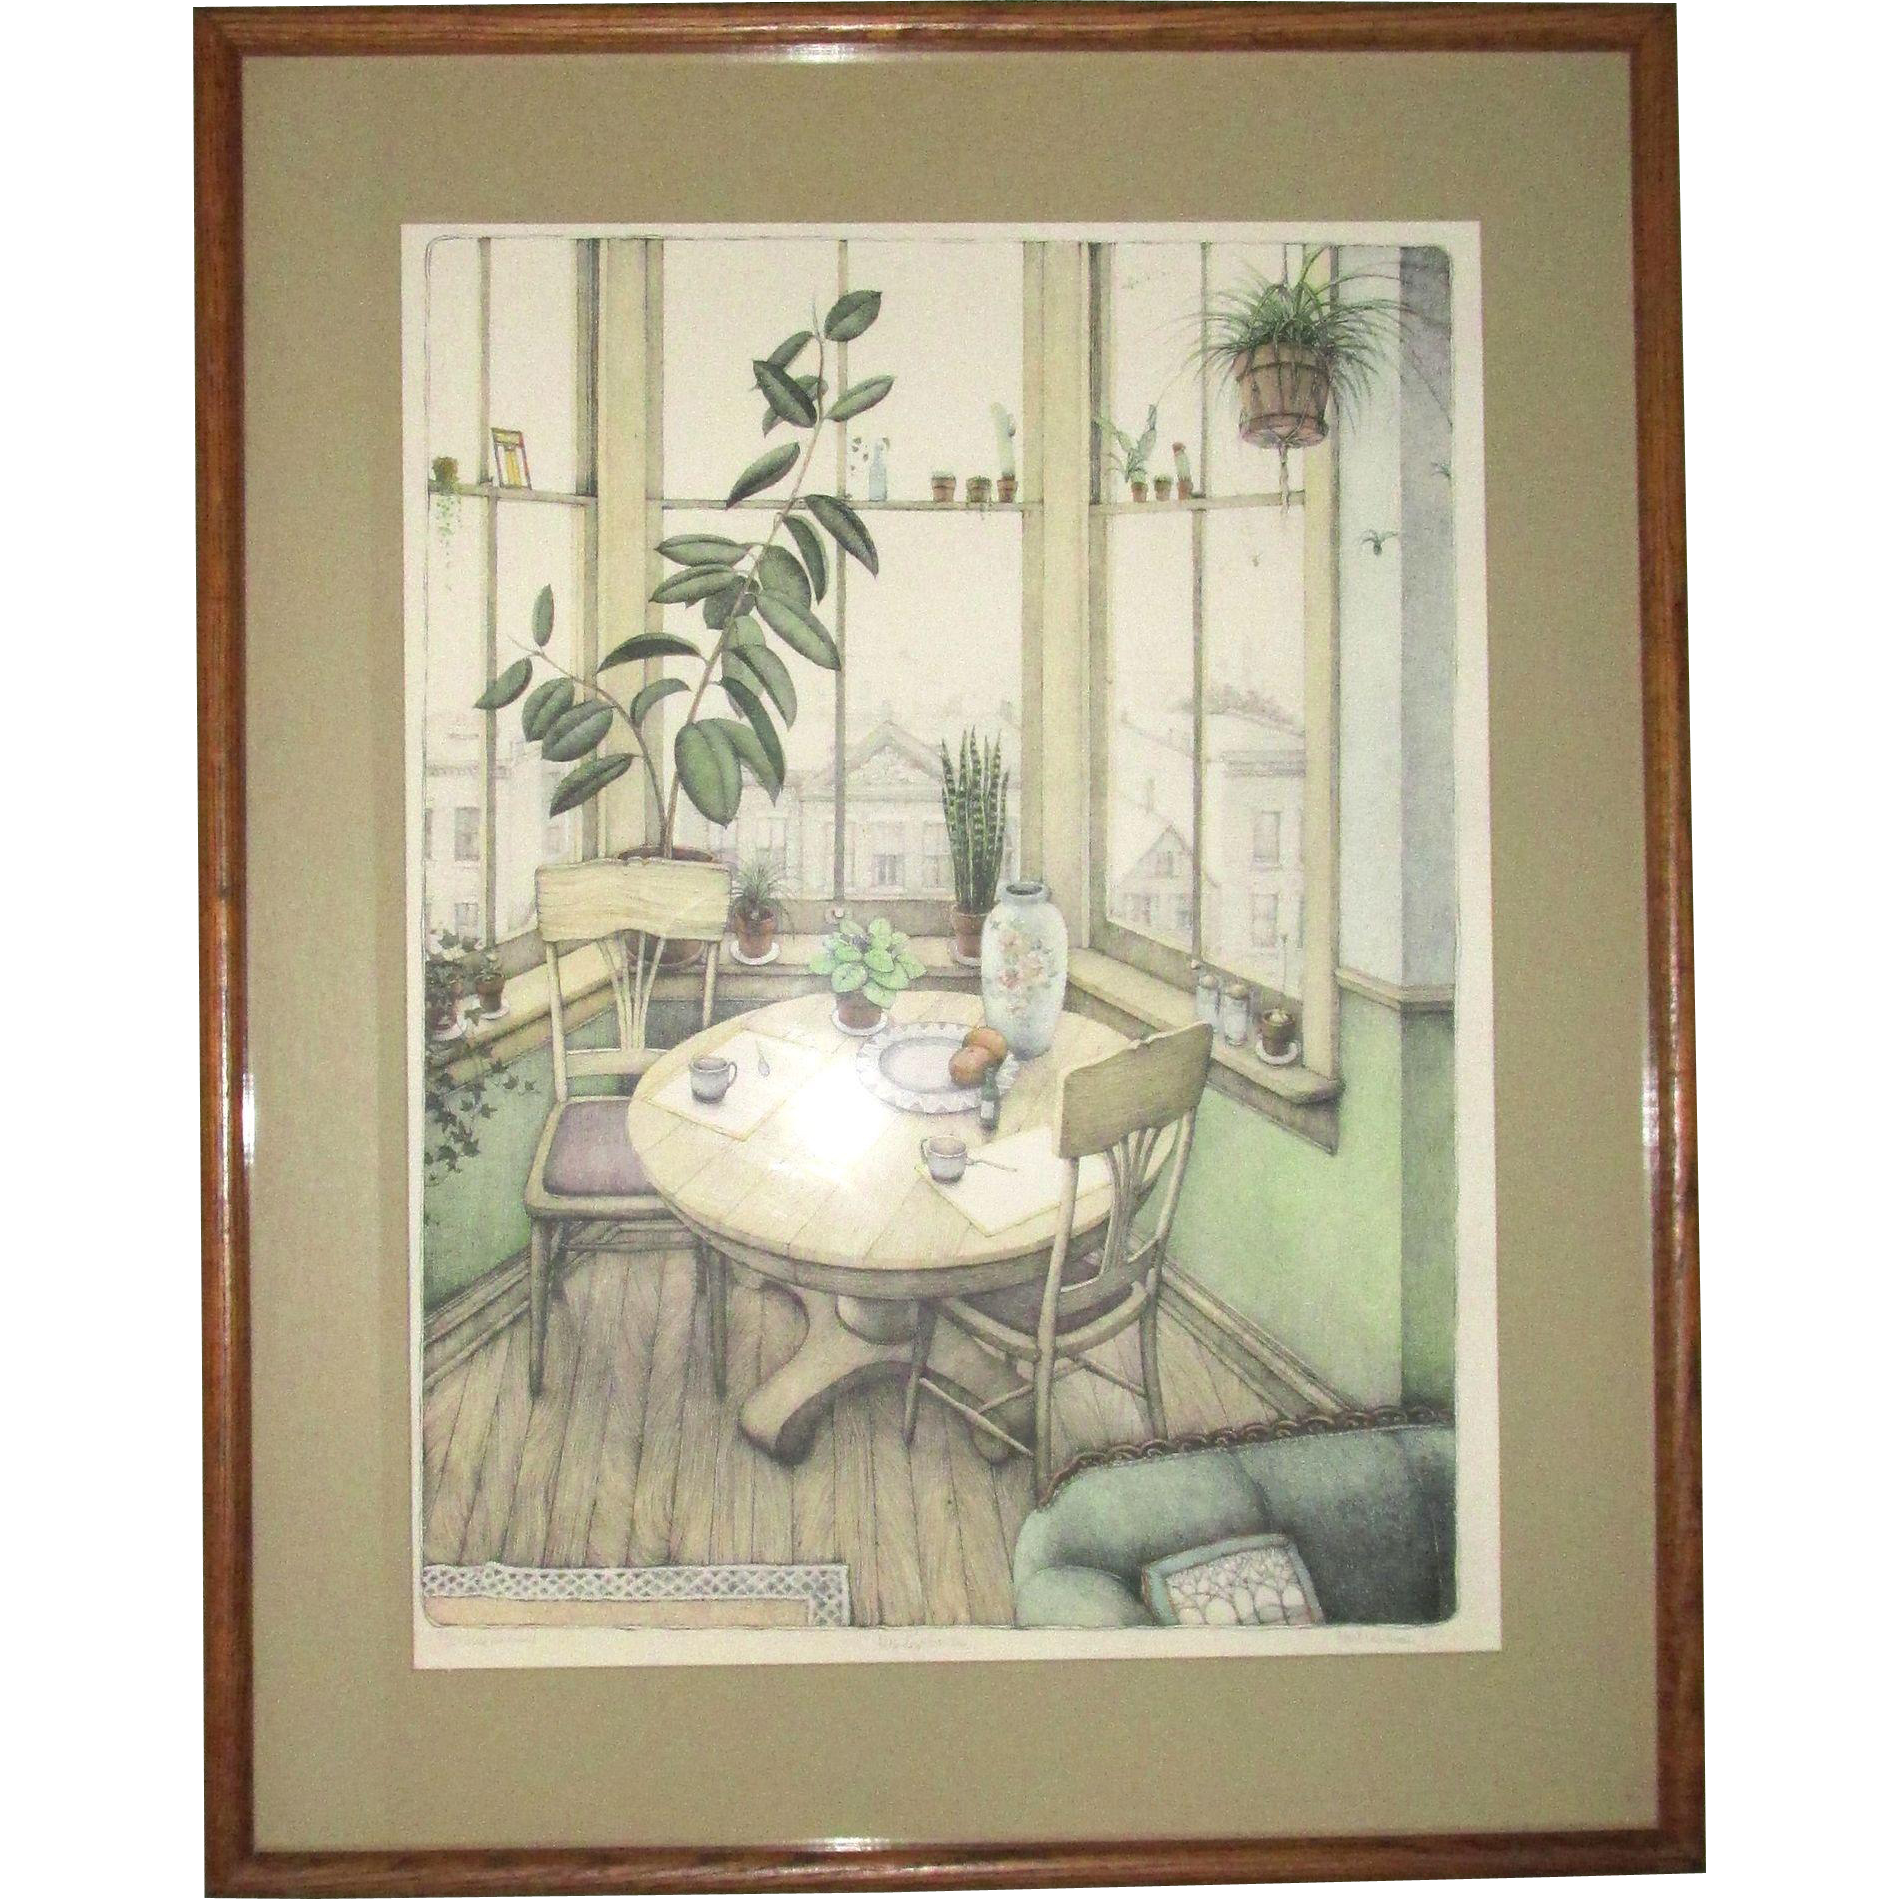 """Susan Hunt Wulkowicz """"Window Garden"""" Hand Colored Lithograph 30"""" x 19"""" Number 79/250 Signed and Dated 1980"""